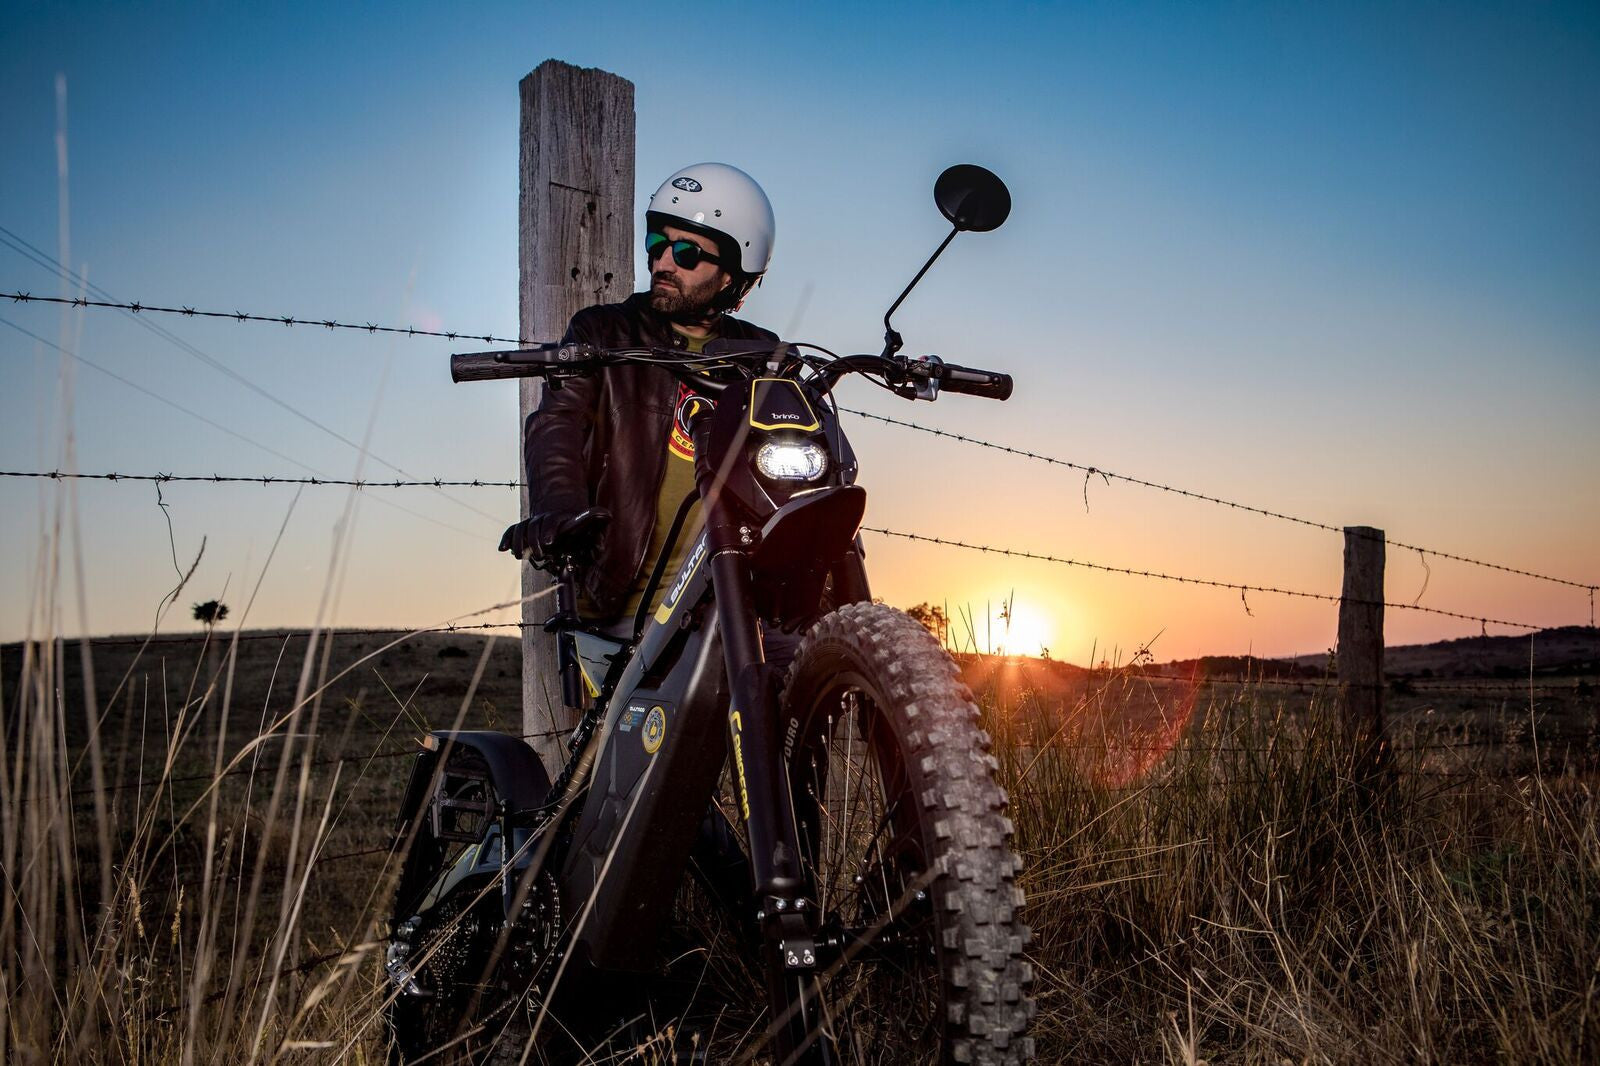 Bultaco Brinco C Restyle Night Time Shoot 3